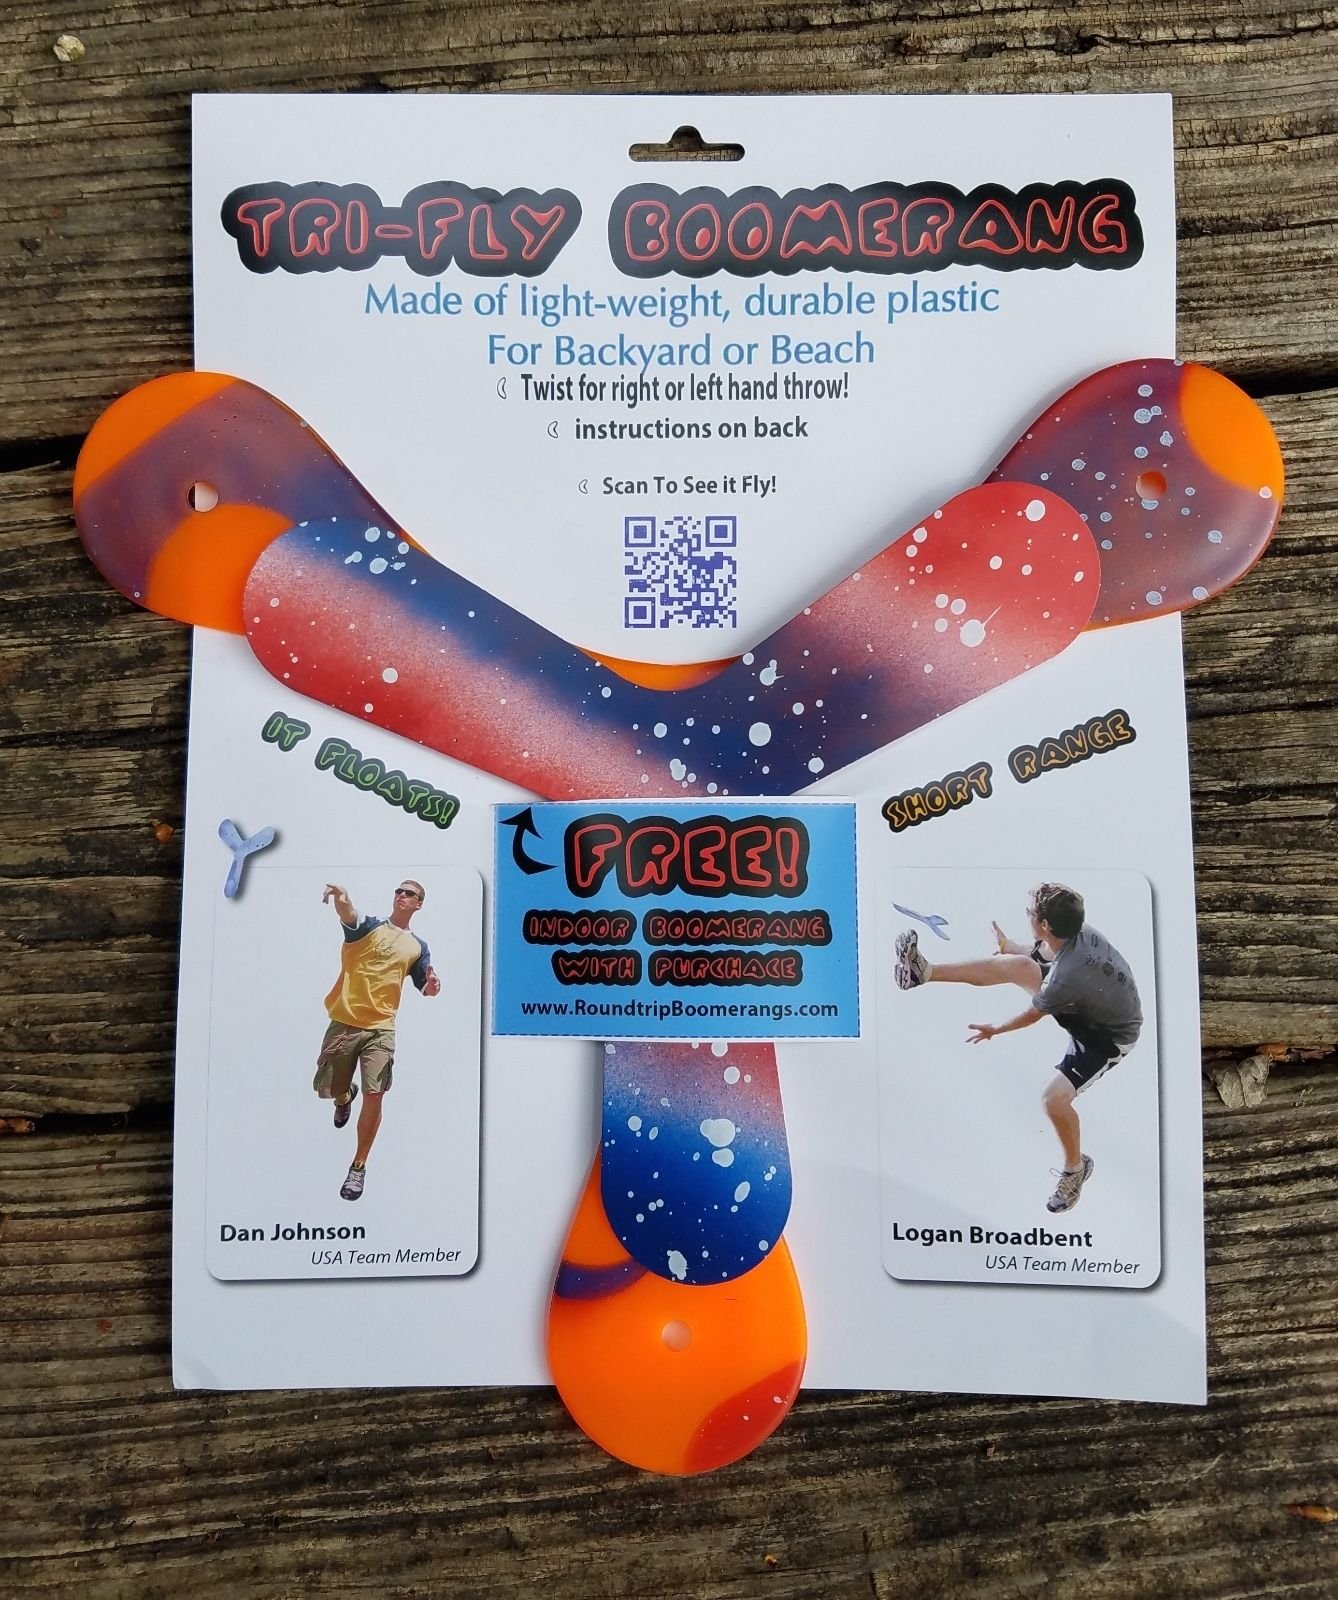 TOP Satisfied Tri-Fly Boomerang on Dude Perfect + bonus indoor boomerang Frisbees Boomerangs by AmaGuardYou